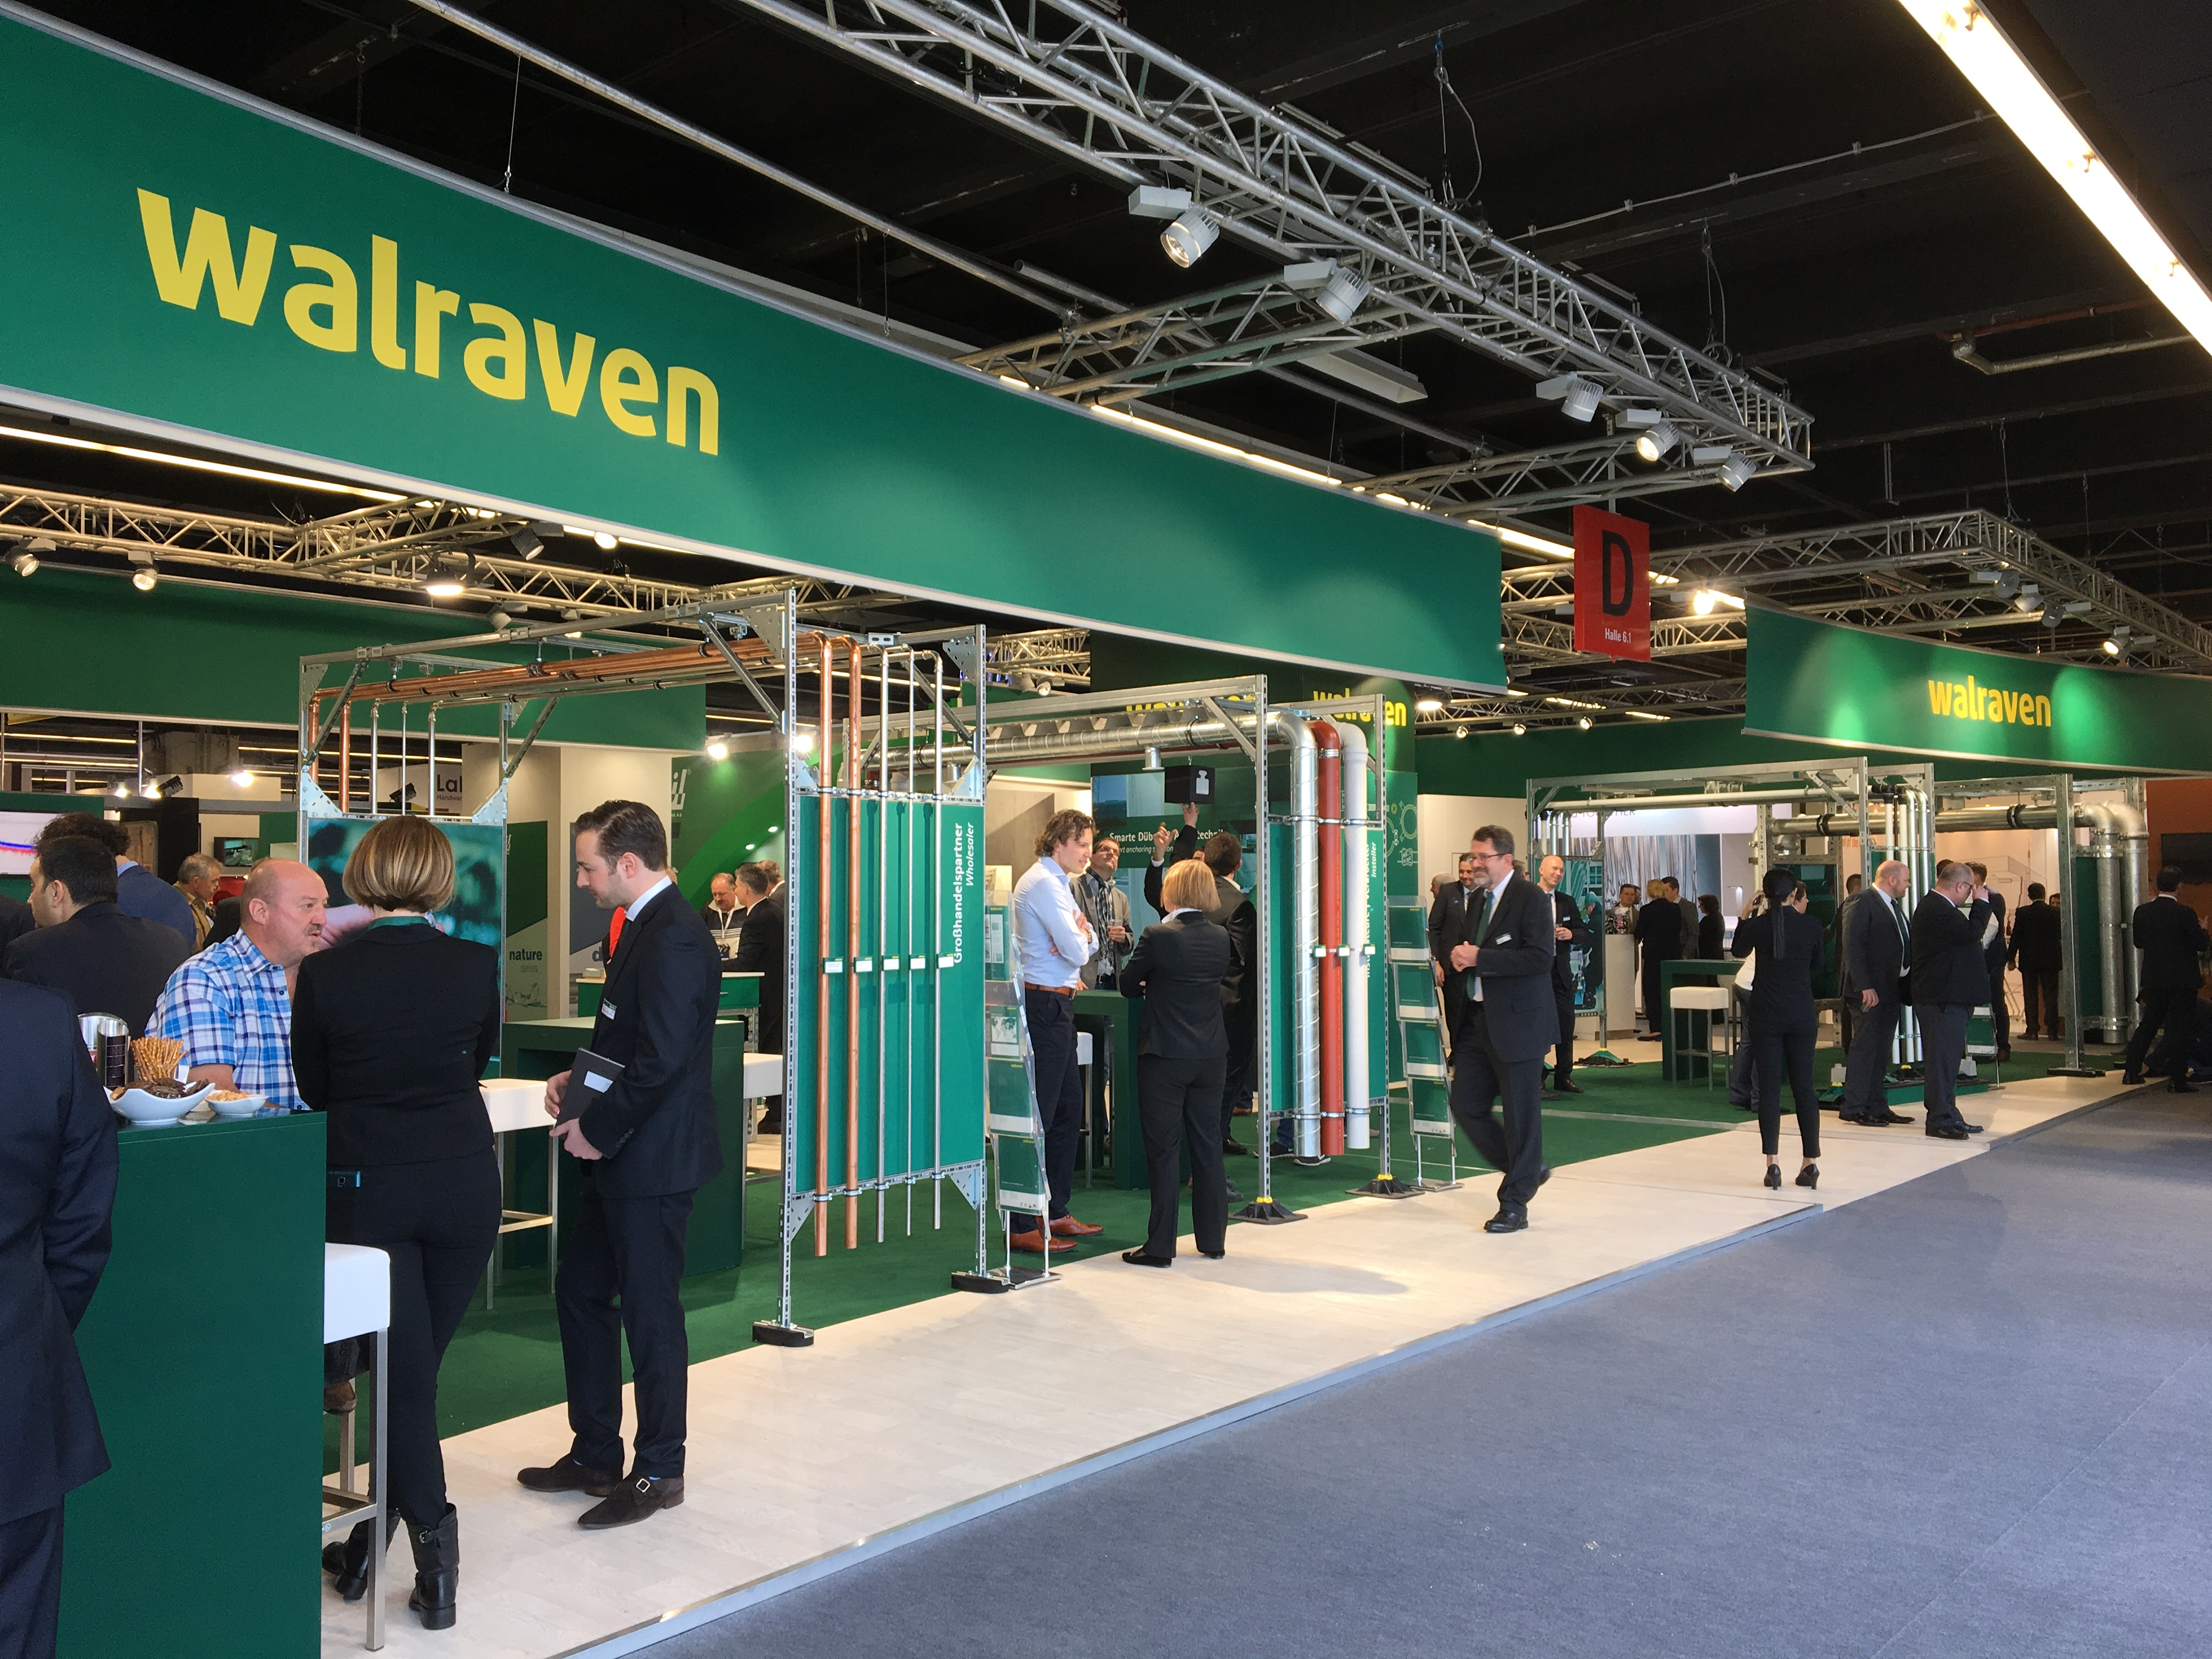 ISH 2017 – Walraven welcomed thousands of visitors over the 4 day event